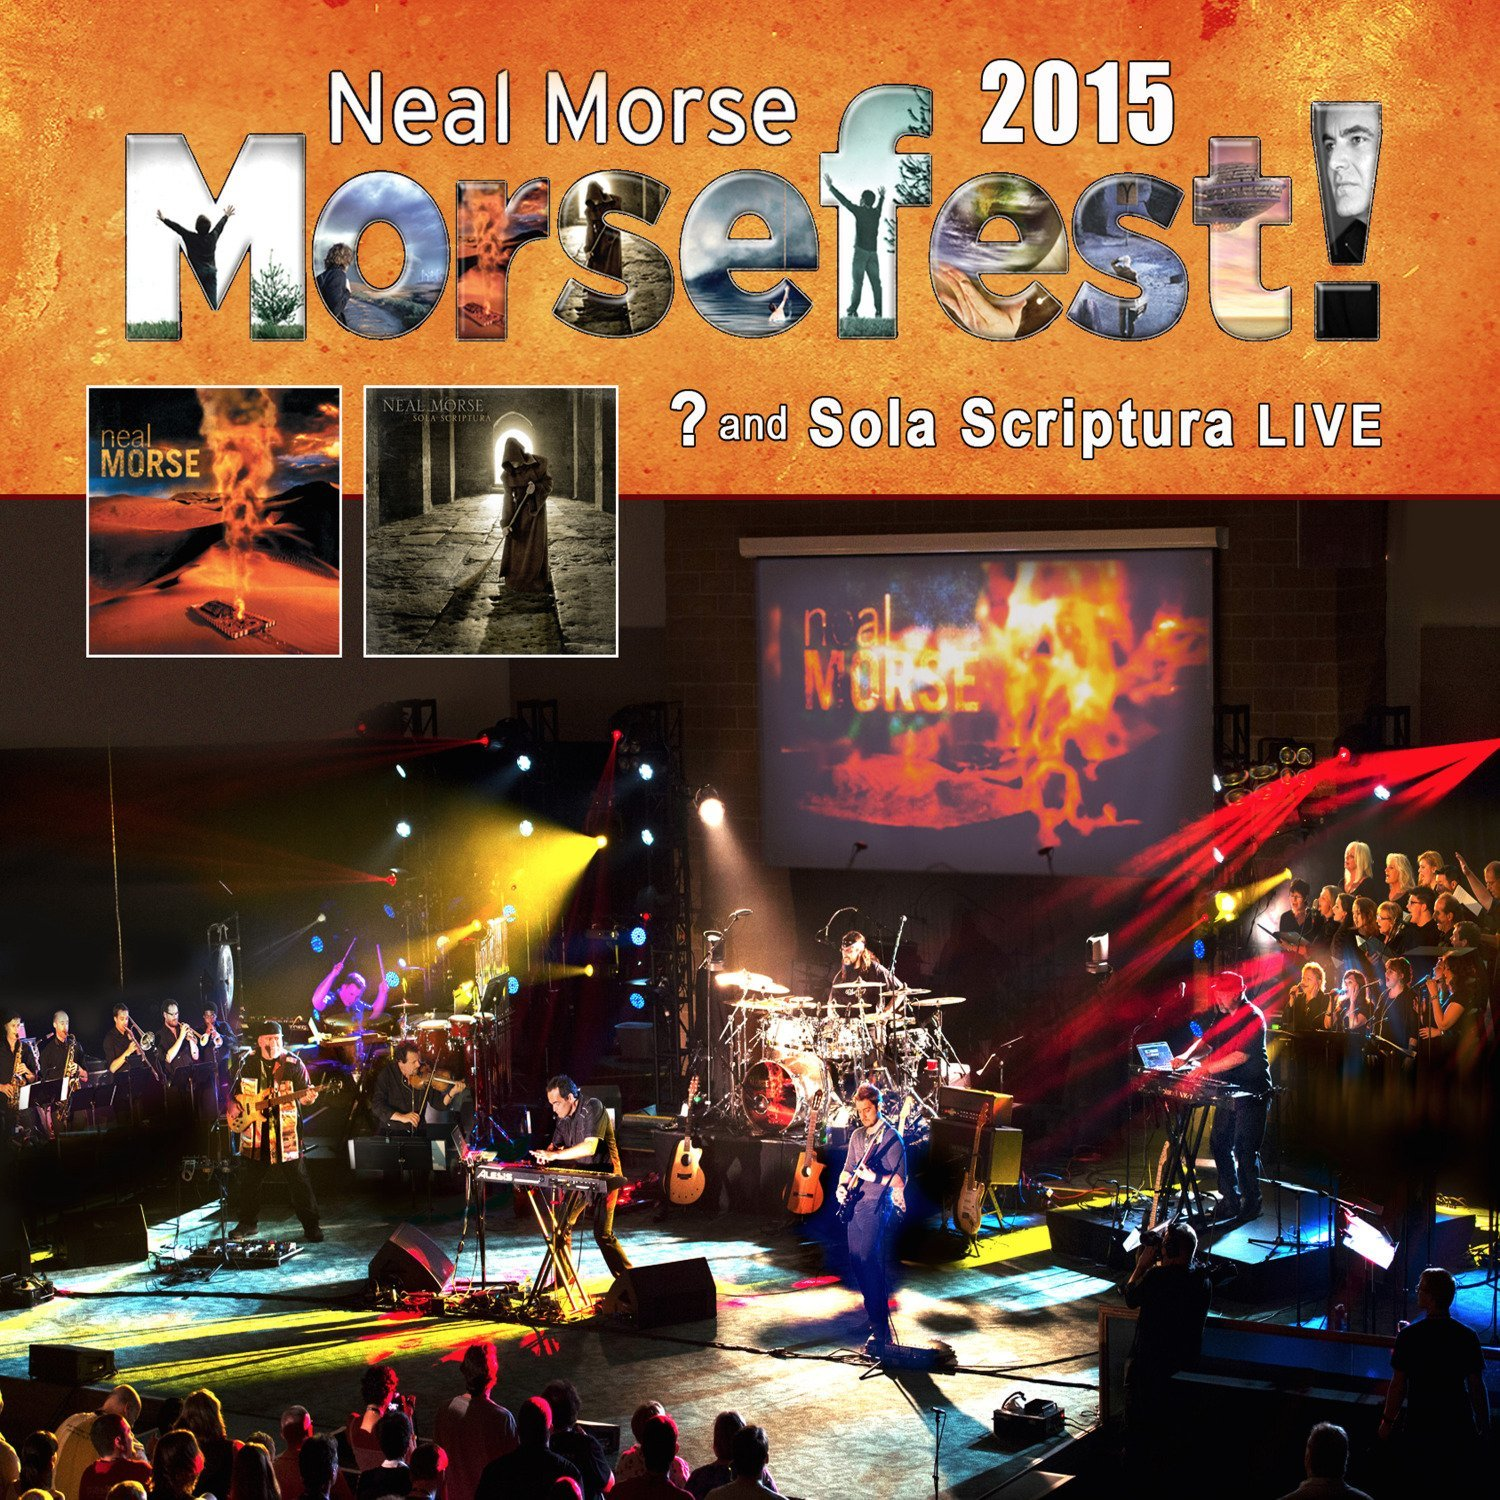 The Neal Morse Band : Morsefest 2015